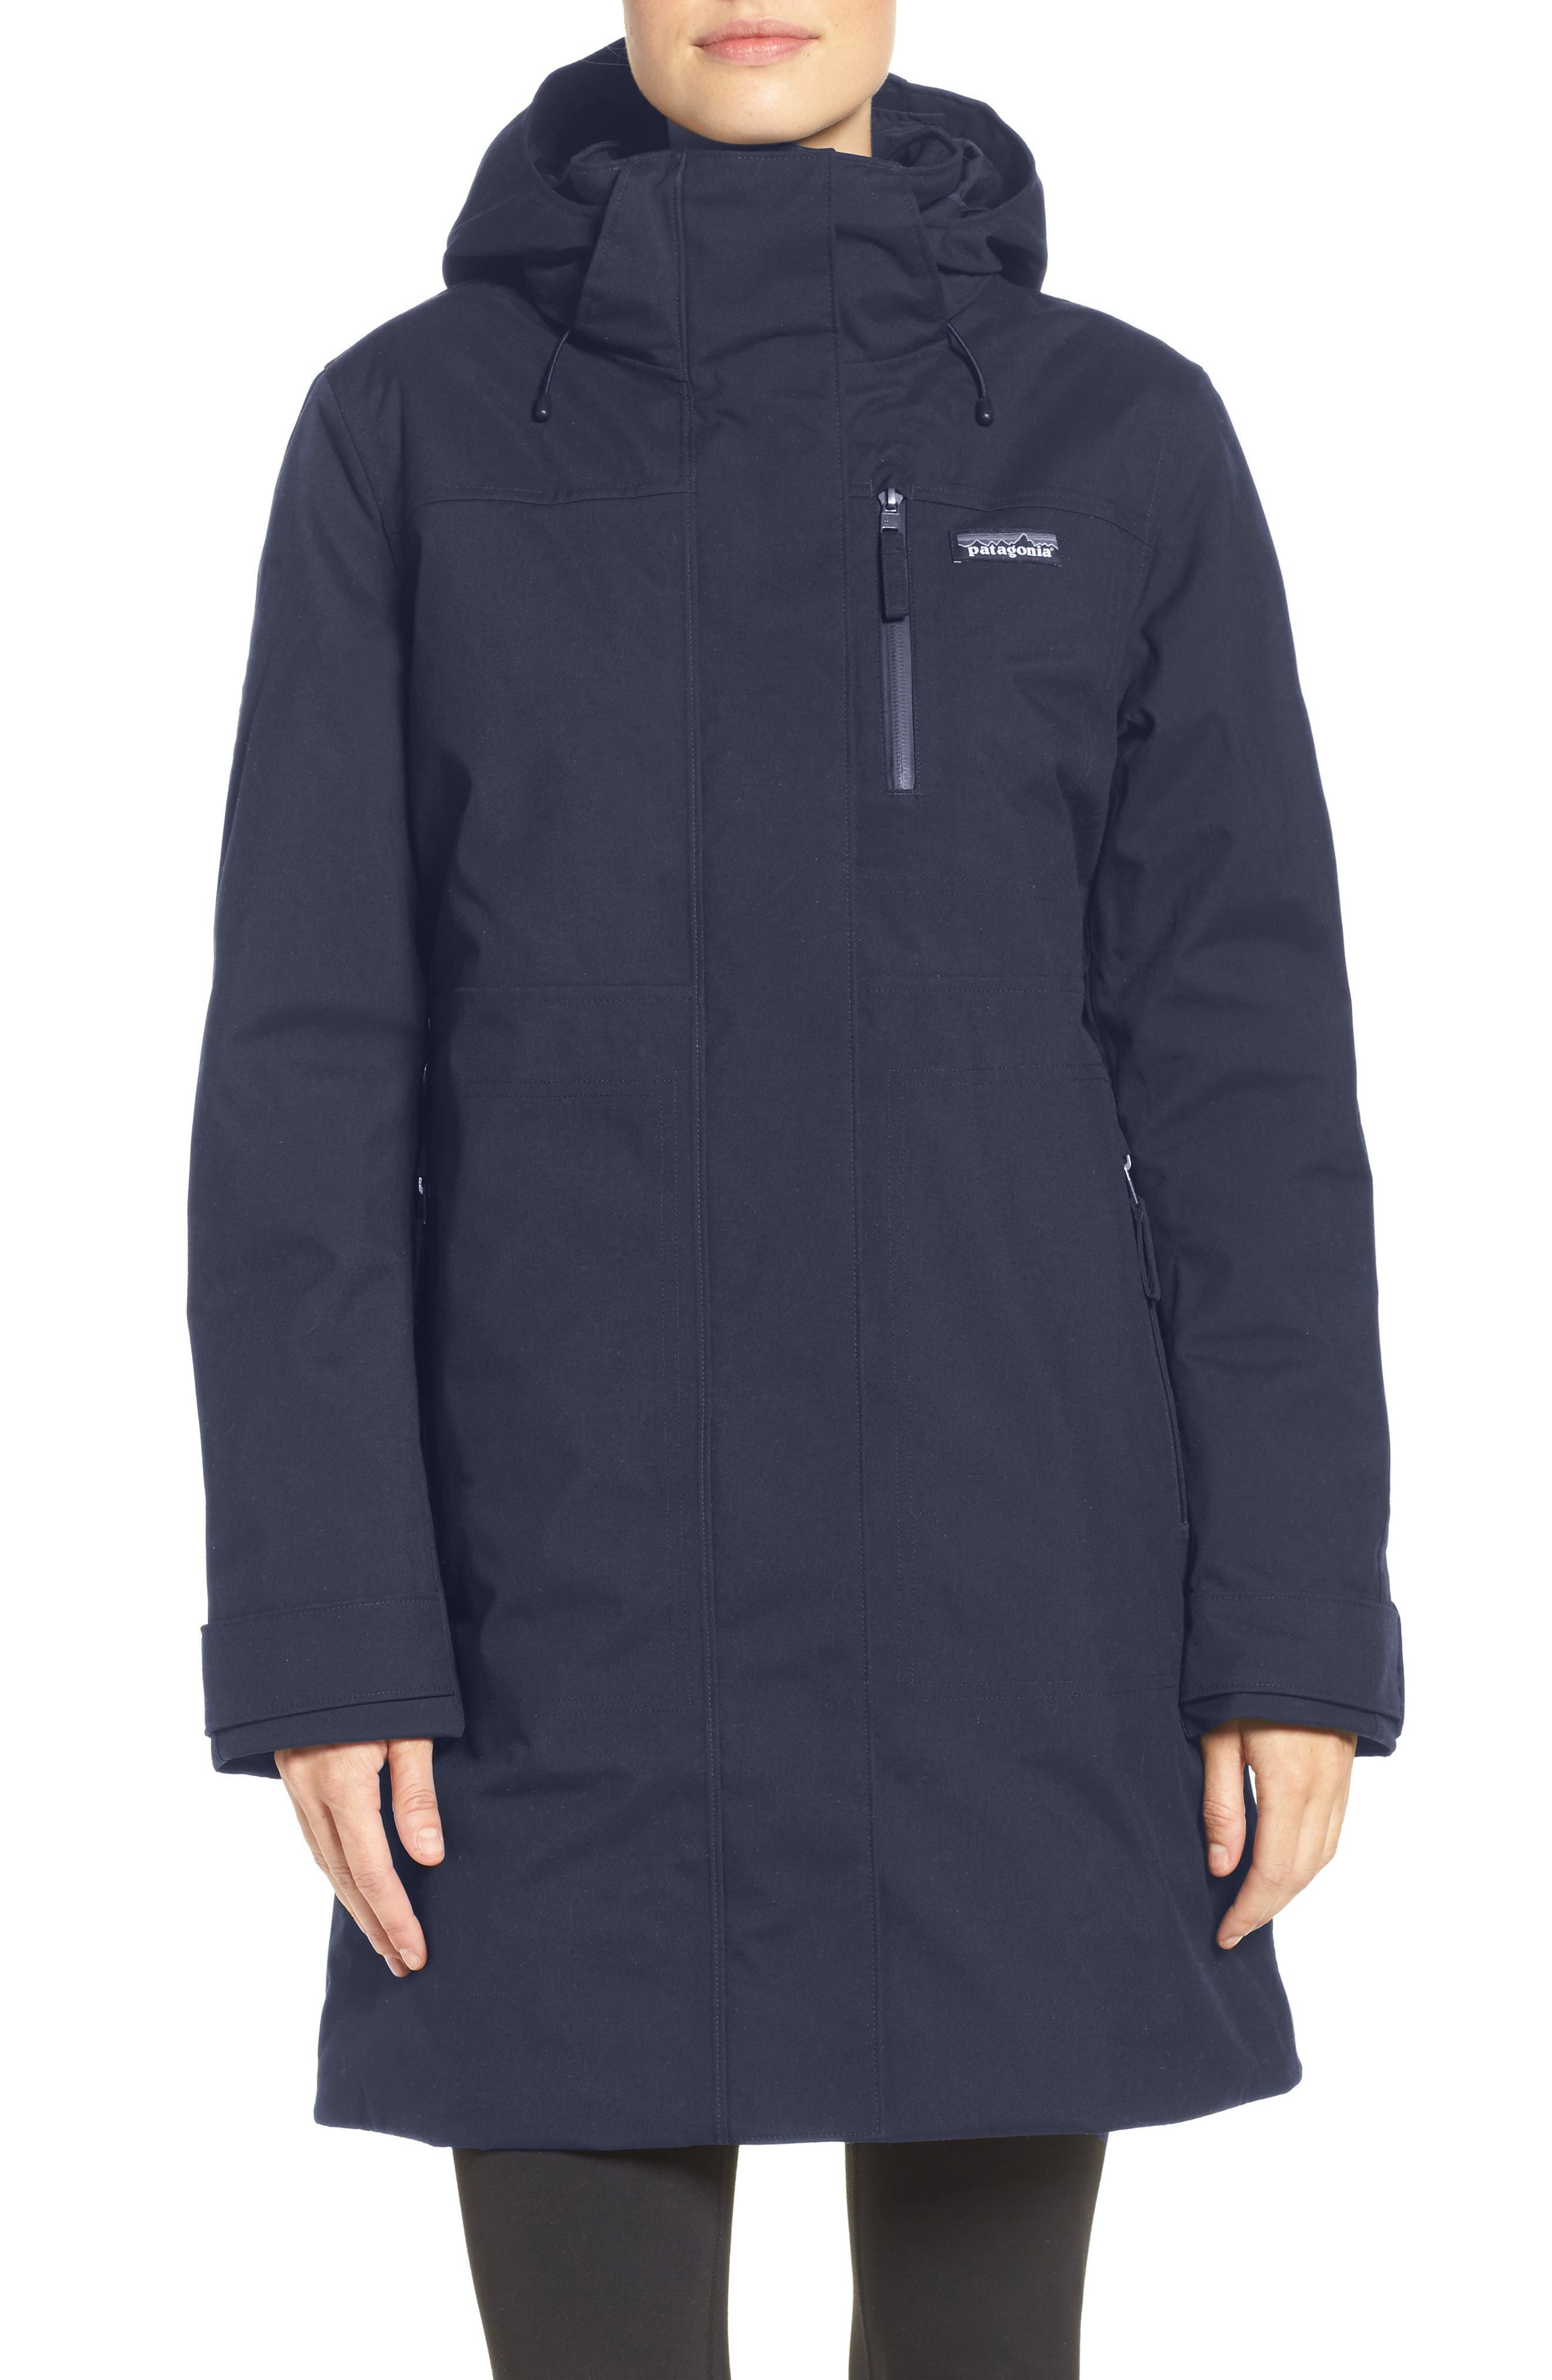 Alternate Image 1 Selected - Patagonia Stormdrift Waterproof Parka